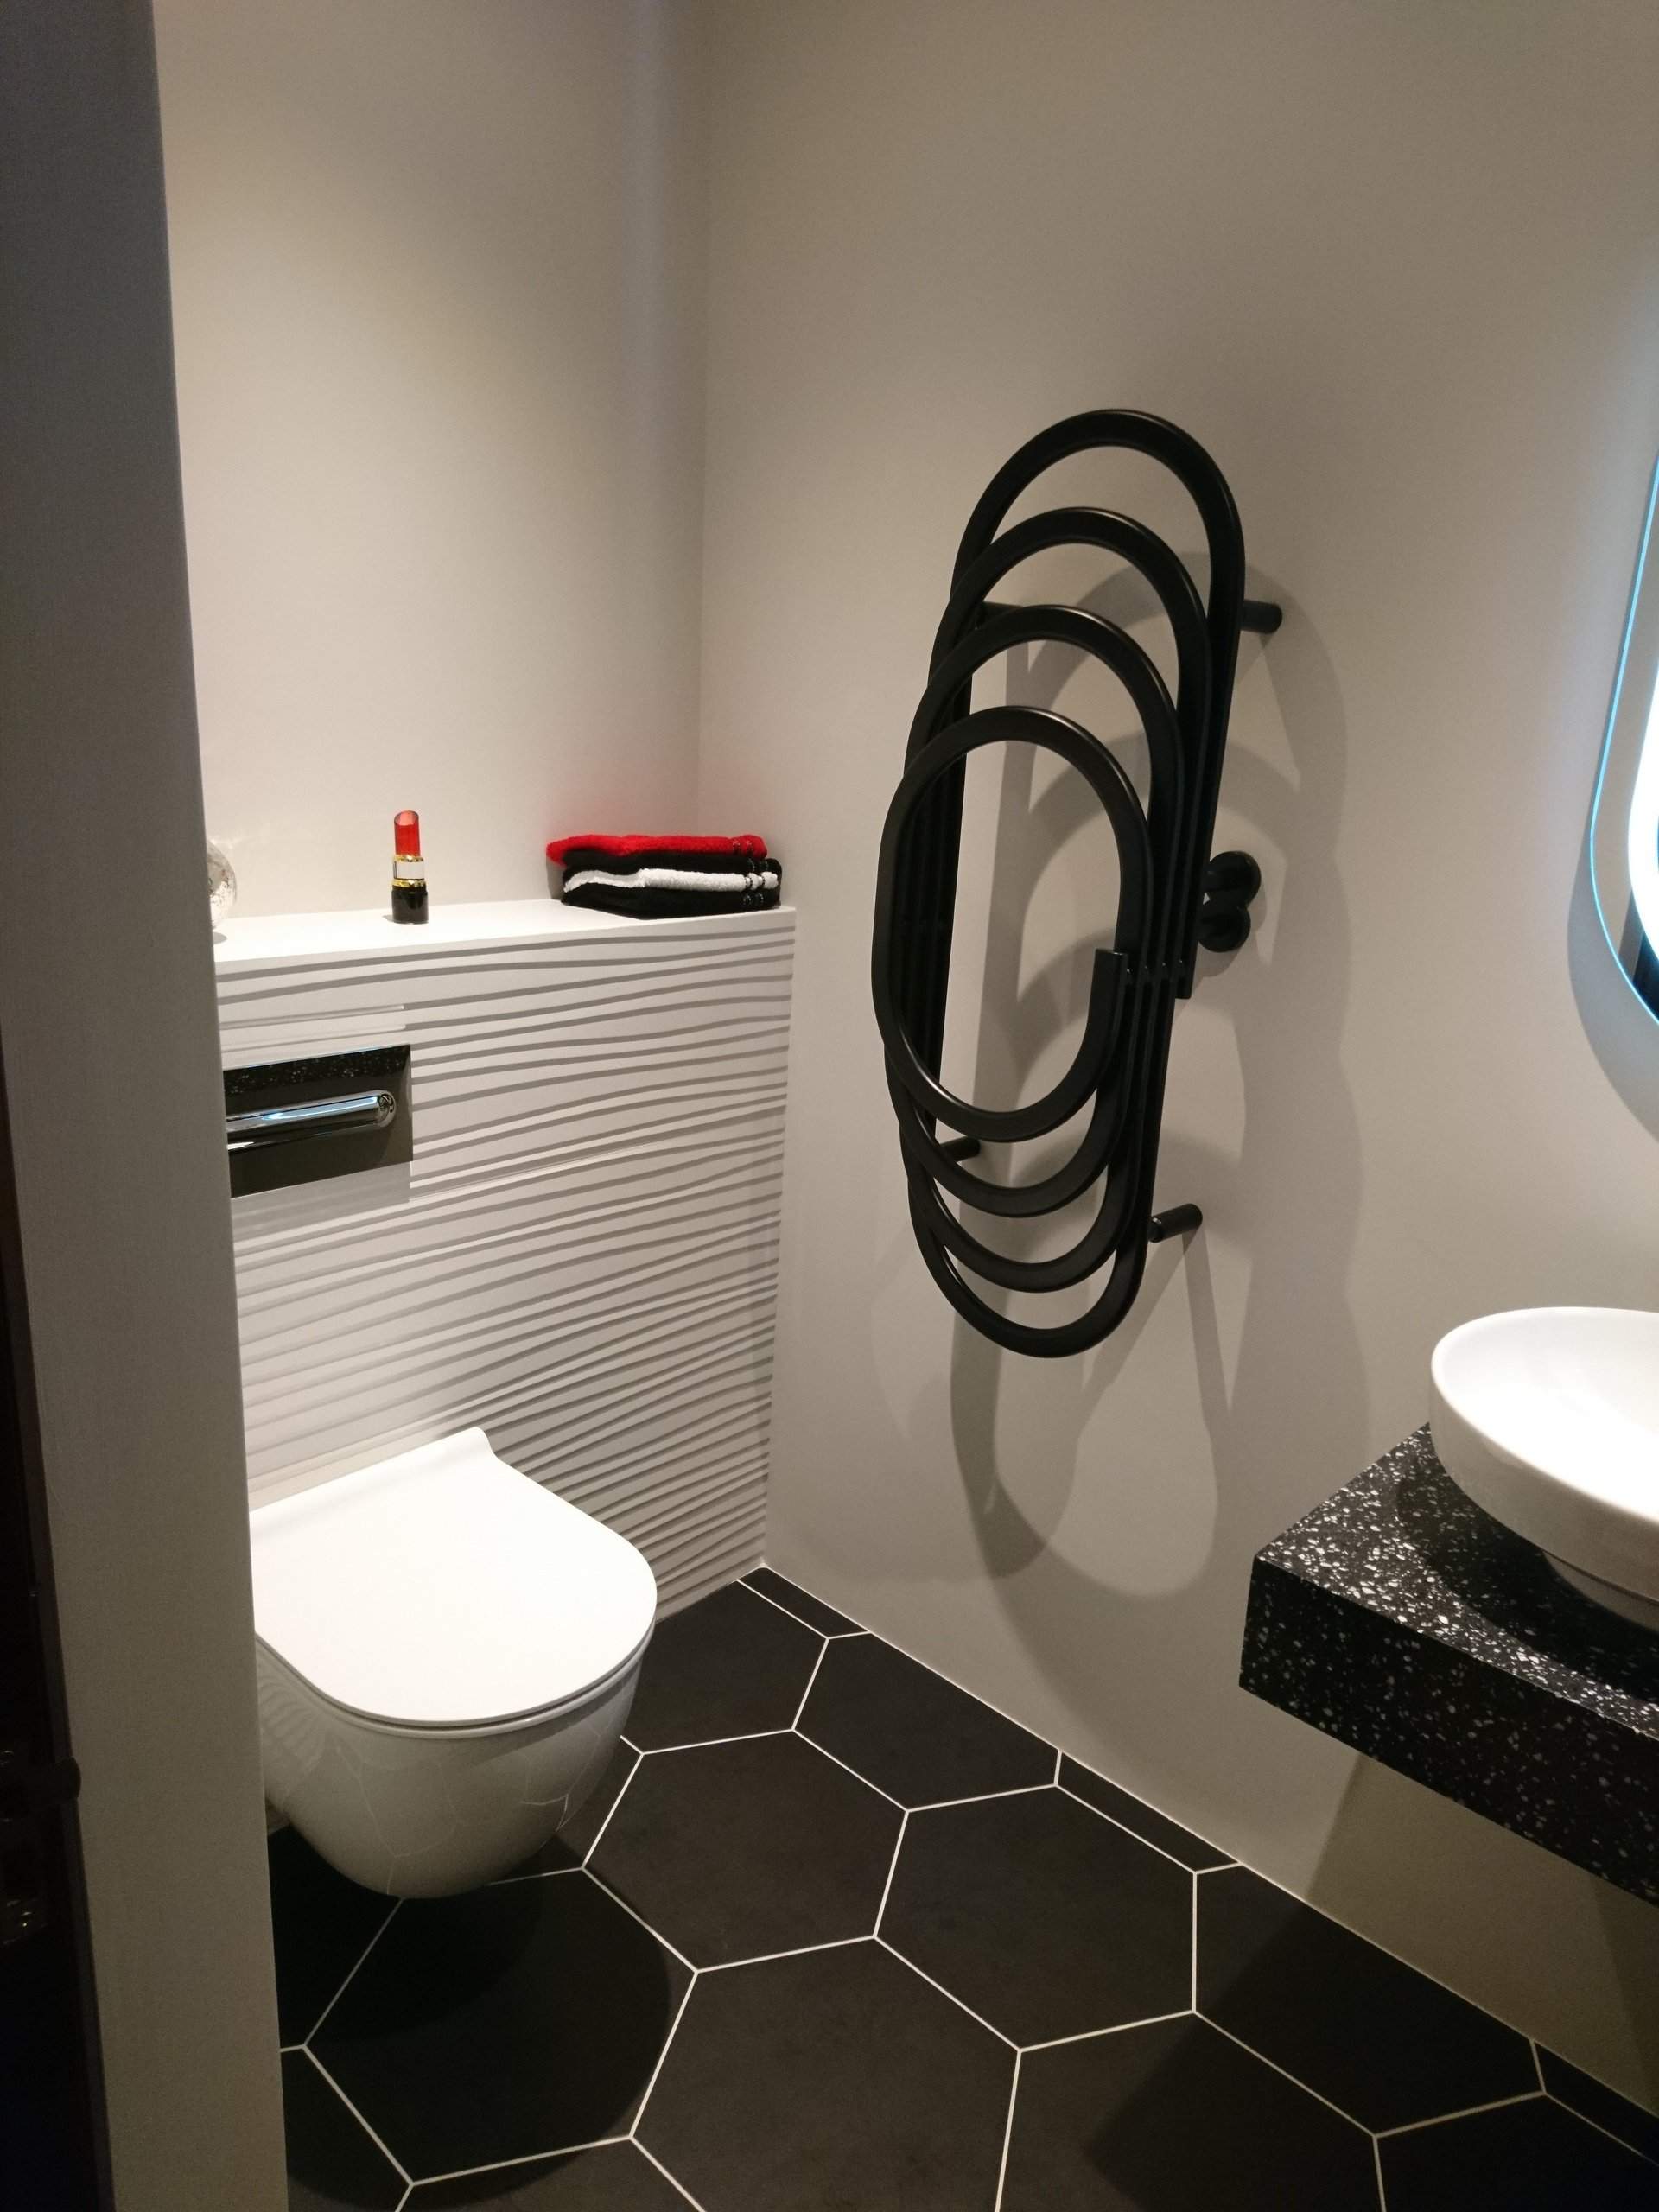 Cloakroom Ideas Images Cloakroom Ideas To Make Your Smallest Room The Most Impressive